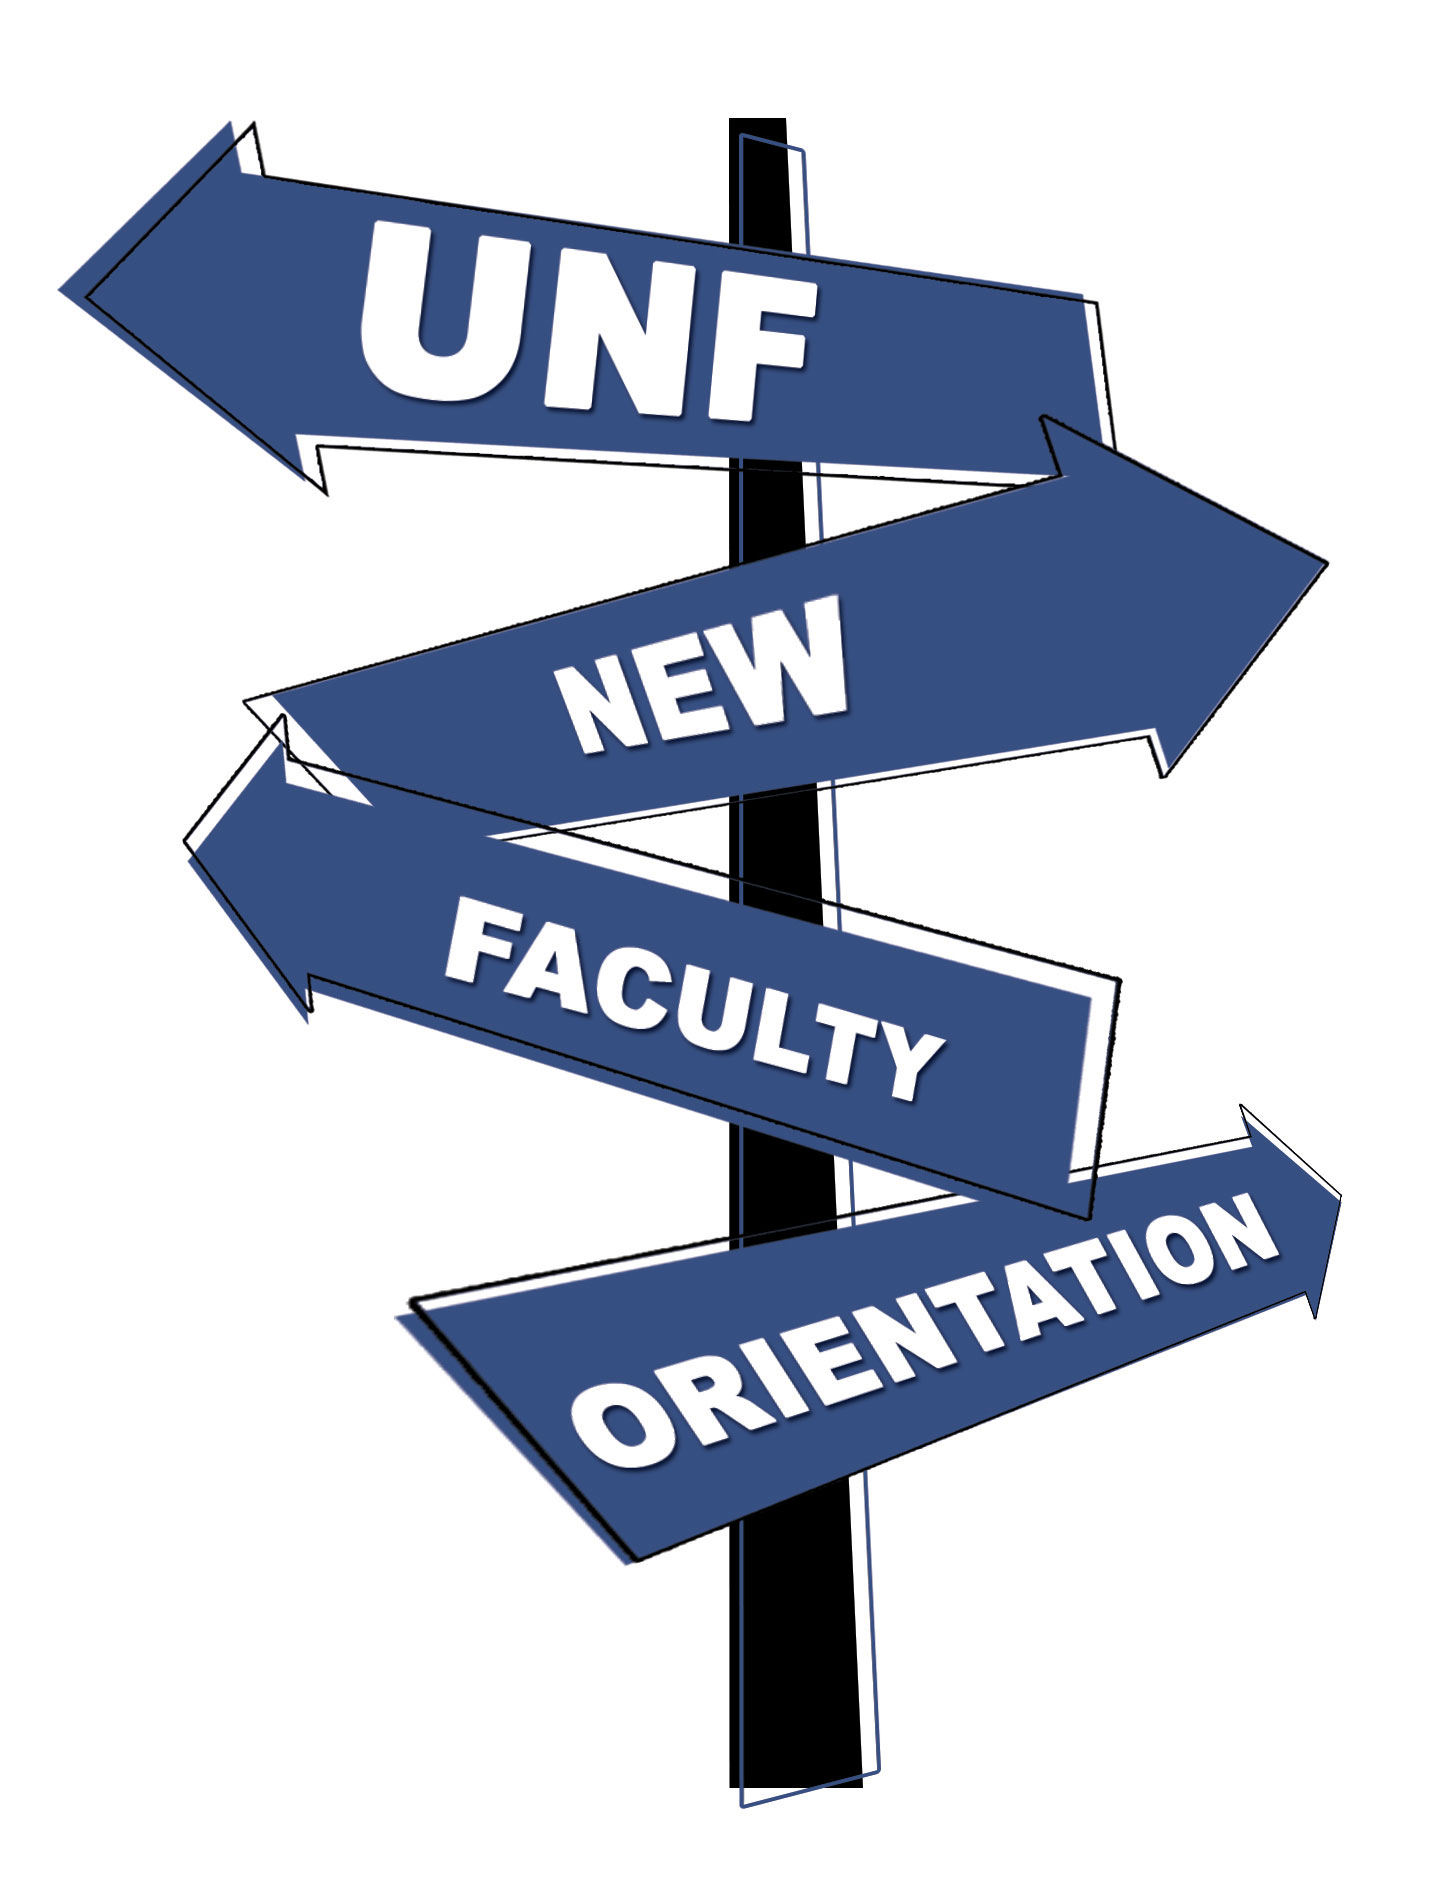 NFO - Starting your Research at UNF